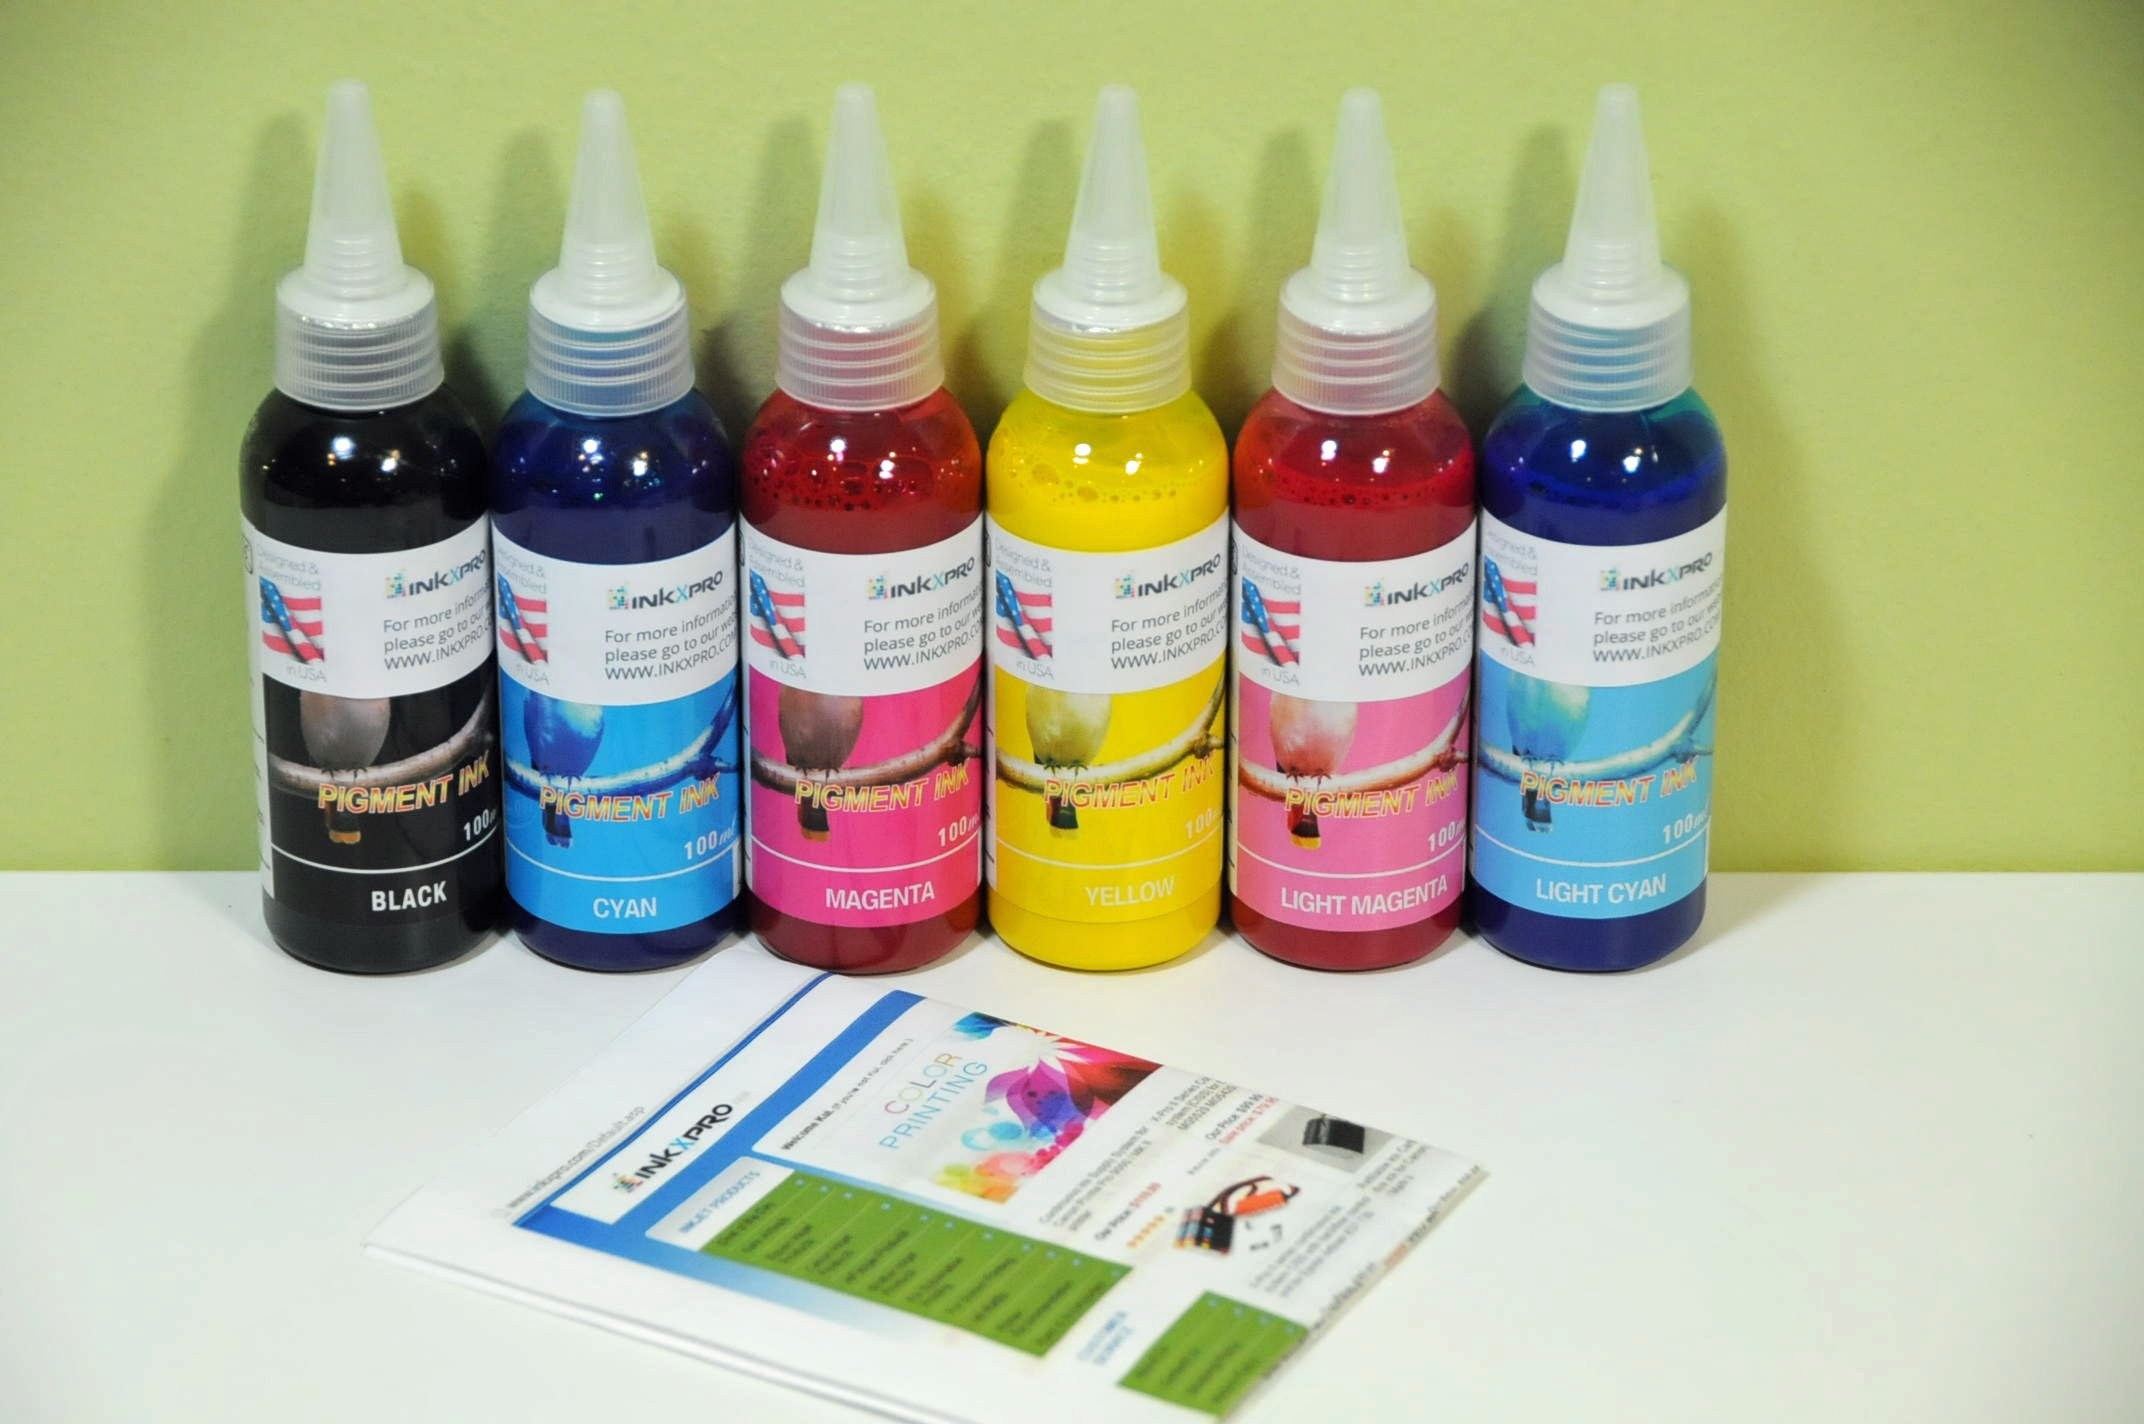 INKXPRO Brand 6X100ml True Color Pigment Ink Refills for Artisan 1430, Stylus Photo 1400 All-in-one Printer